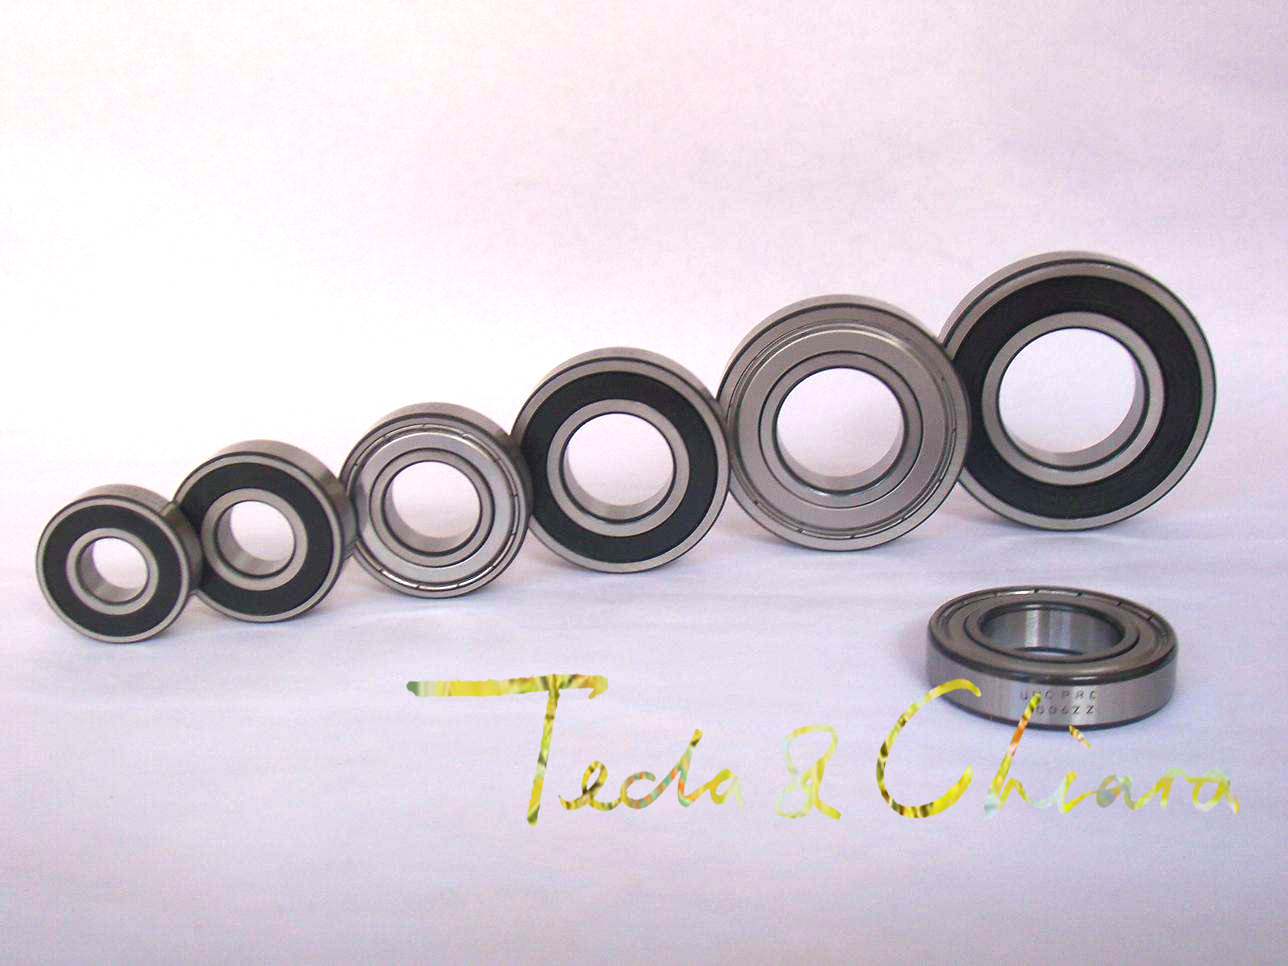 696 696ZZ 696RS 696-2Z 696Z 696-2RS ZZ RS RZ 2RZ Deep Groove Ball Bearings 6 x 15 x 5mm High Quality abec 5 10pcs 696zz 6x15x5 mm miniature ball bearings 696 thin wall deep groove ball bearing 6962z 6 15 5mm fo 6mm shaft